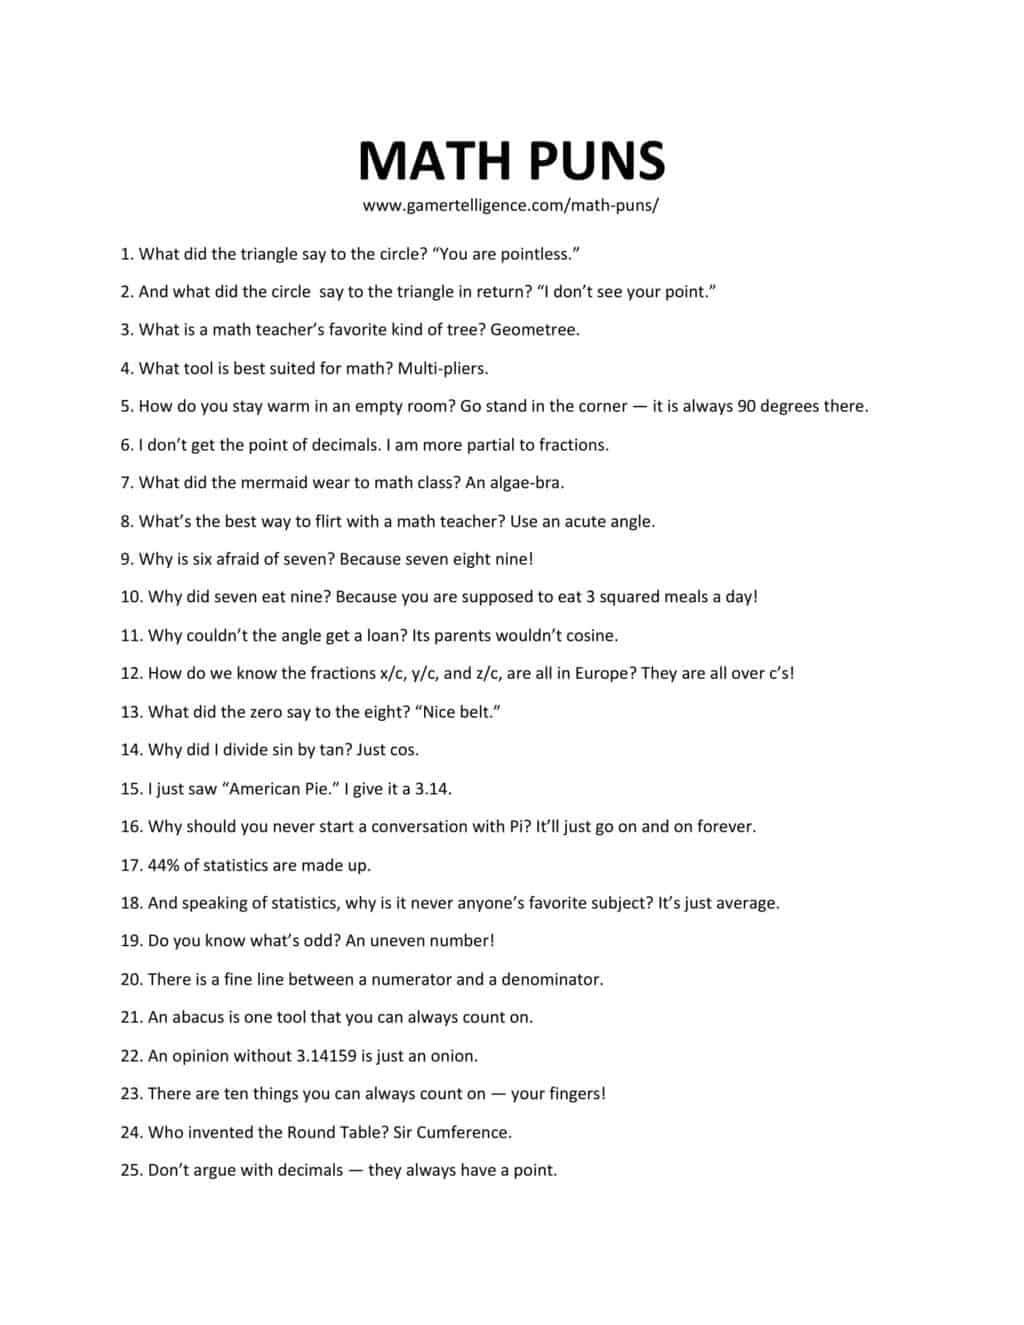 Downloadable and printable list of mathematical puns in jpg or pdf format.